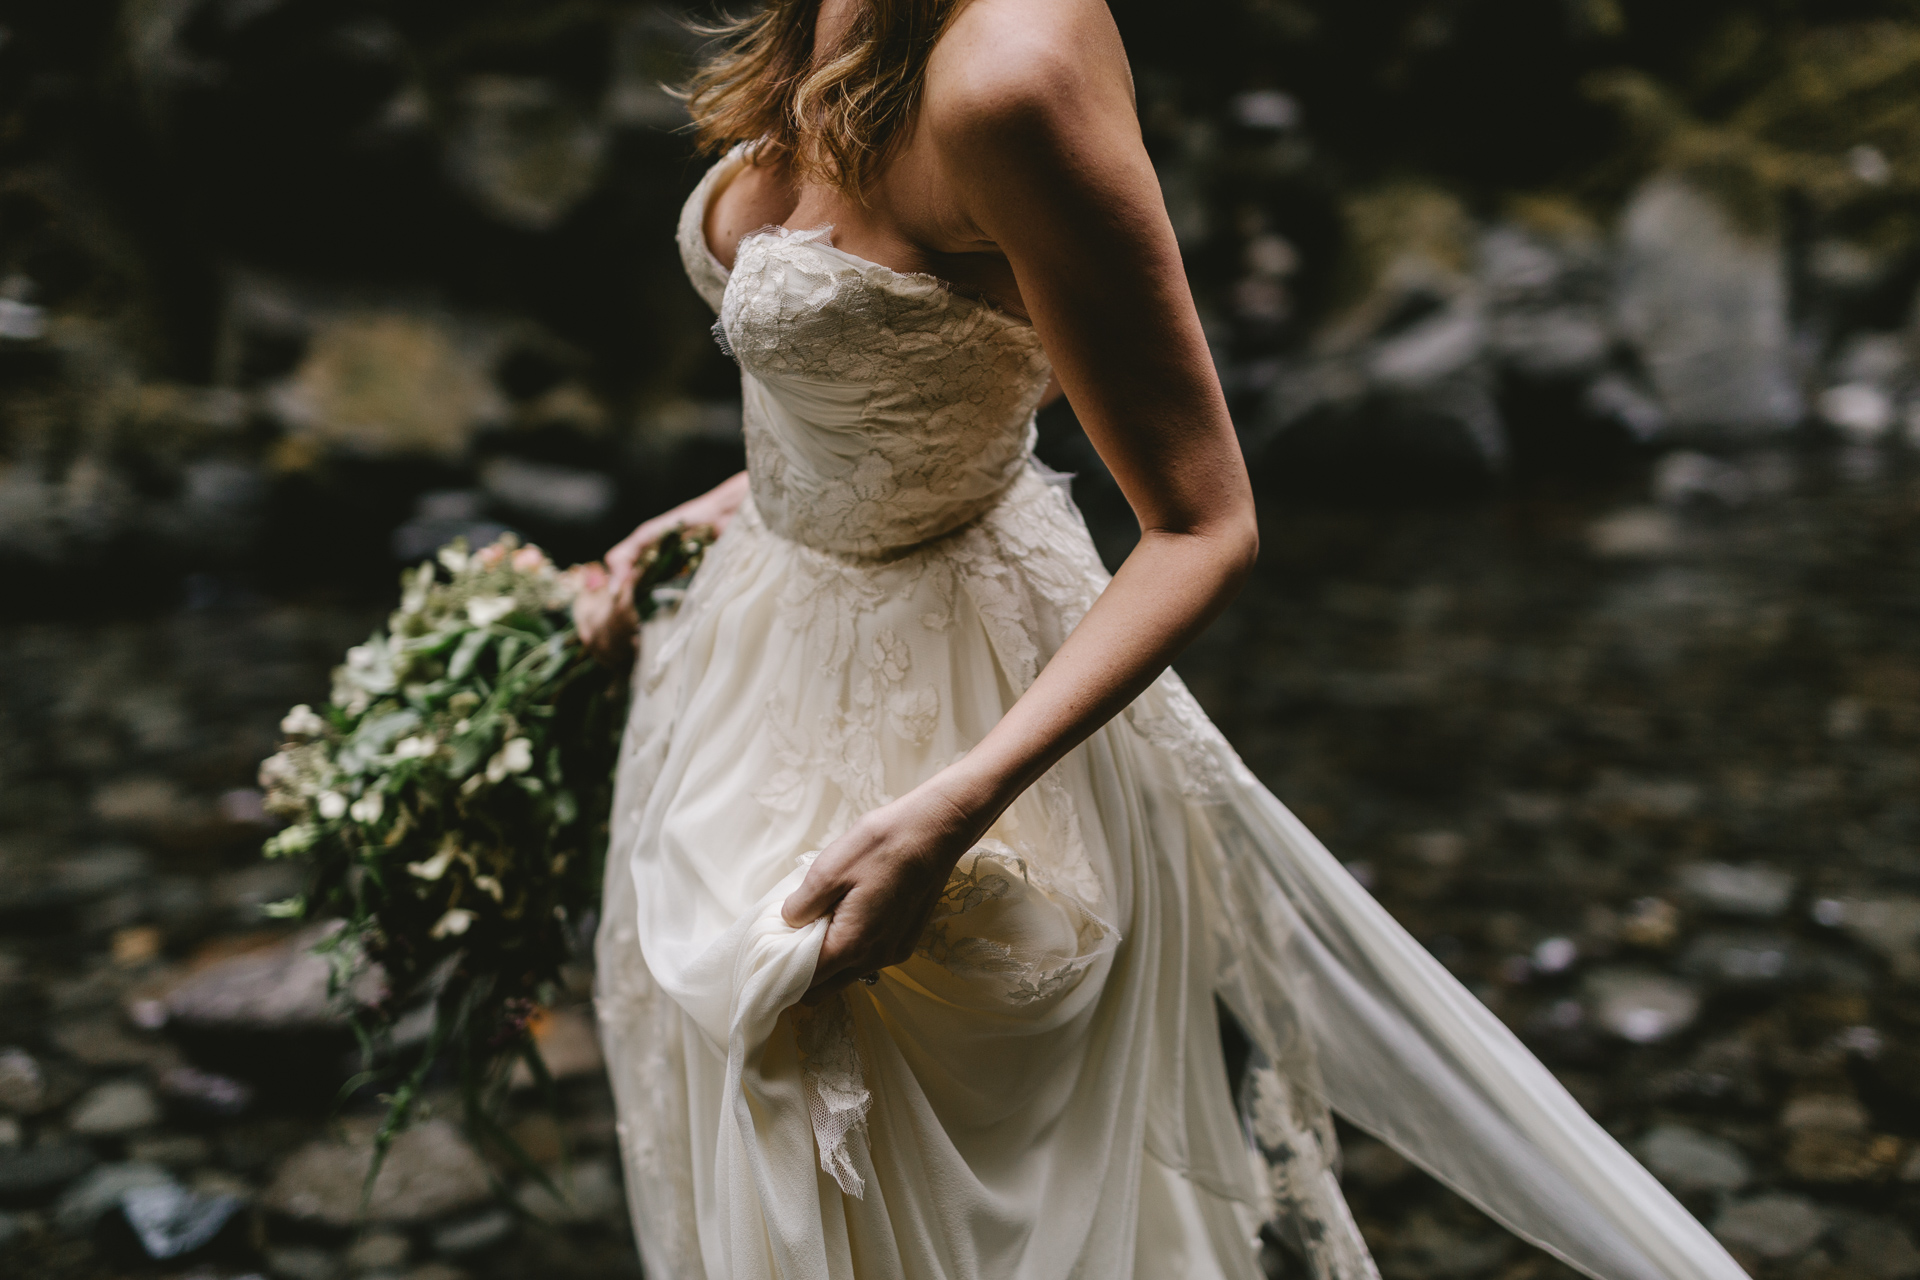 Oneonta Gorge, Oregon, Columbia River Gorge, adventurous Oregon elopement photographed by Jess Hunter, places to elope in Oregon,  Sarah Seven bride in Cascade gown, natural wedding in the Pacific Northwest, barefoot bride in the water